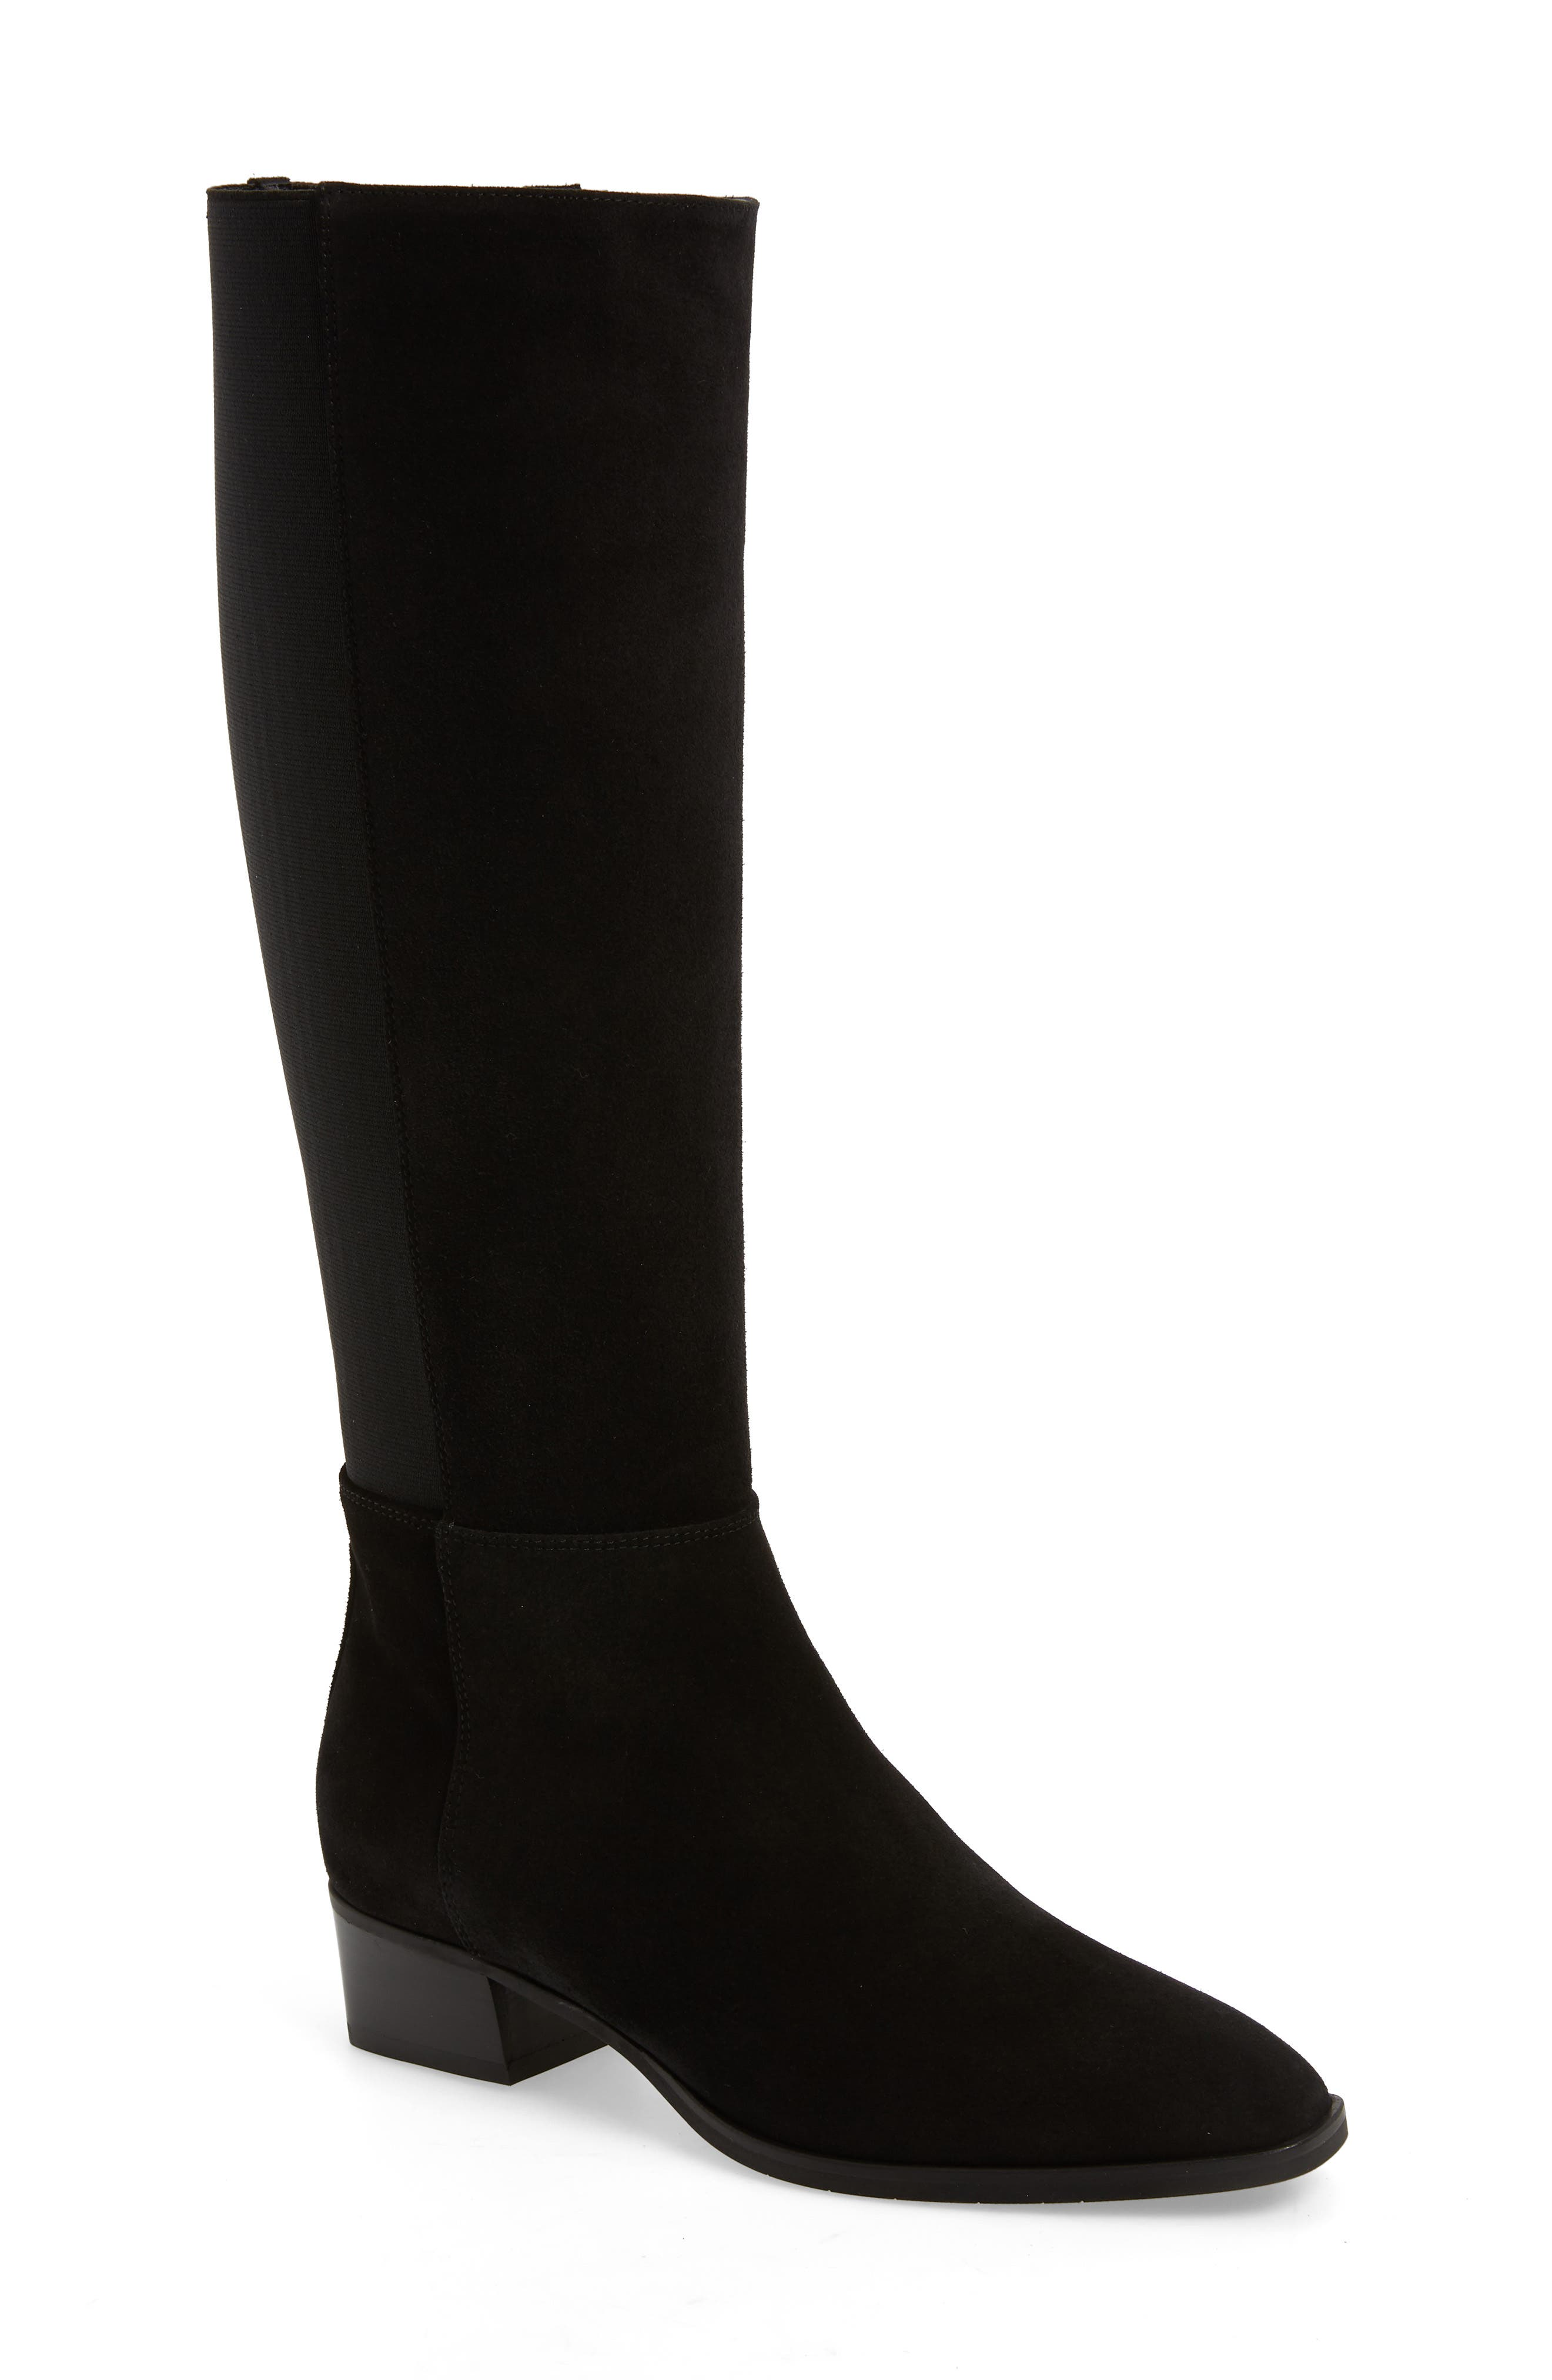 AQUATALIA Women'S Finola Weatherproof Block-Heel Riding Boots in Black